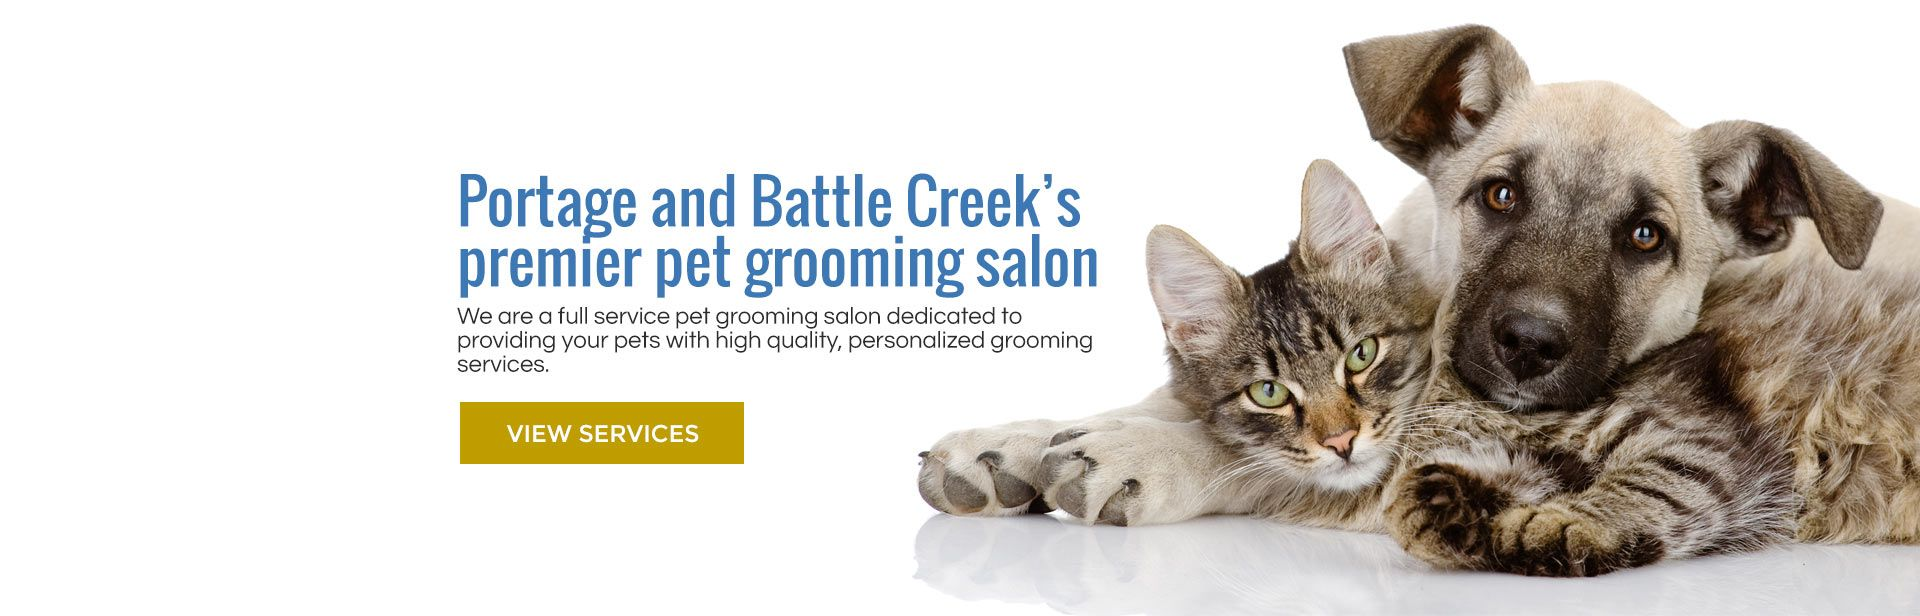 Portage and Battle Creek locations for pet grooming